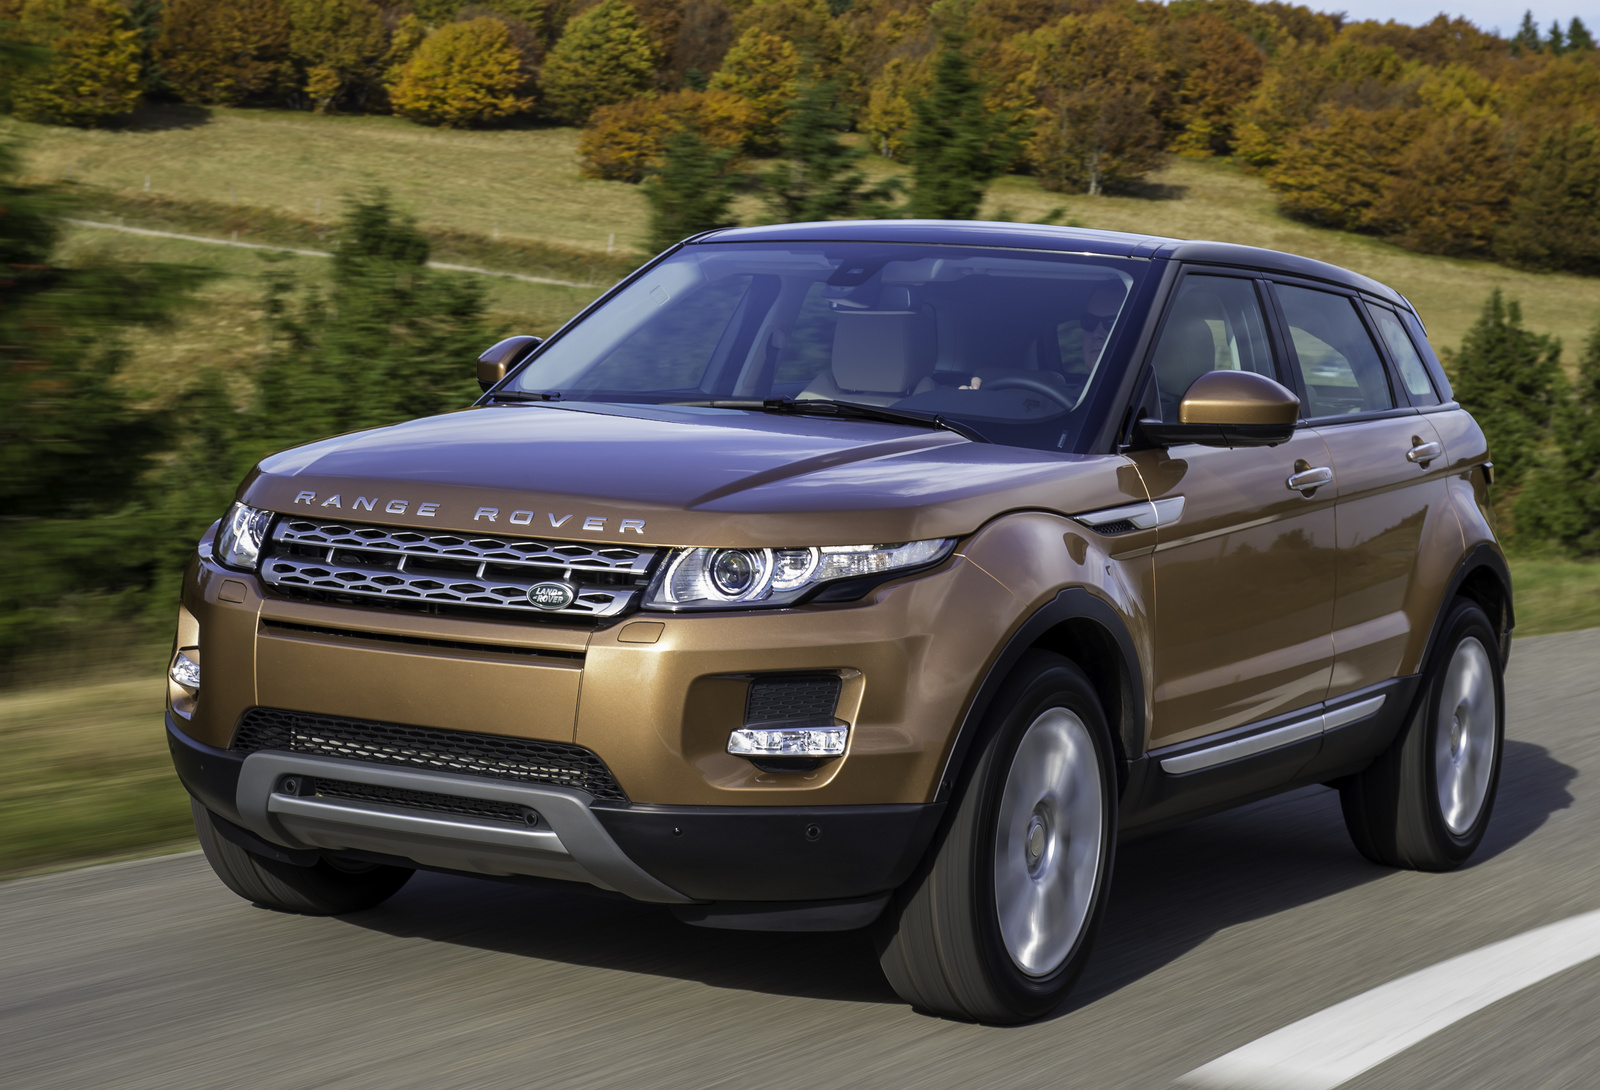 2014 land rover range rover evoque information and photos momentcar. Black Bedroom Furniture Sets. Home Design Ideas